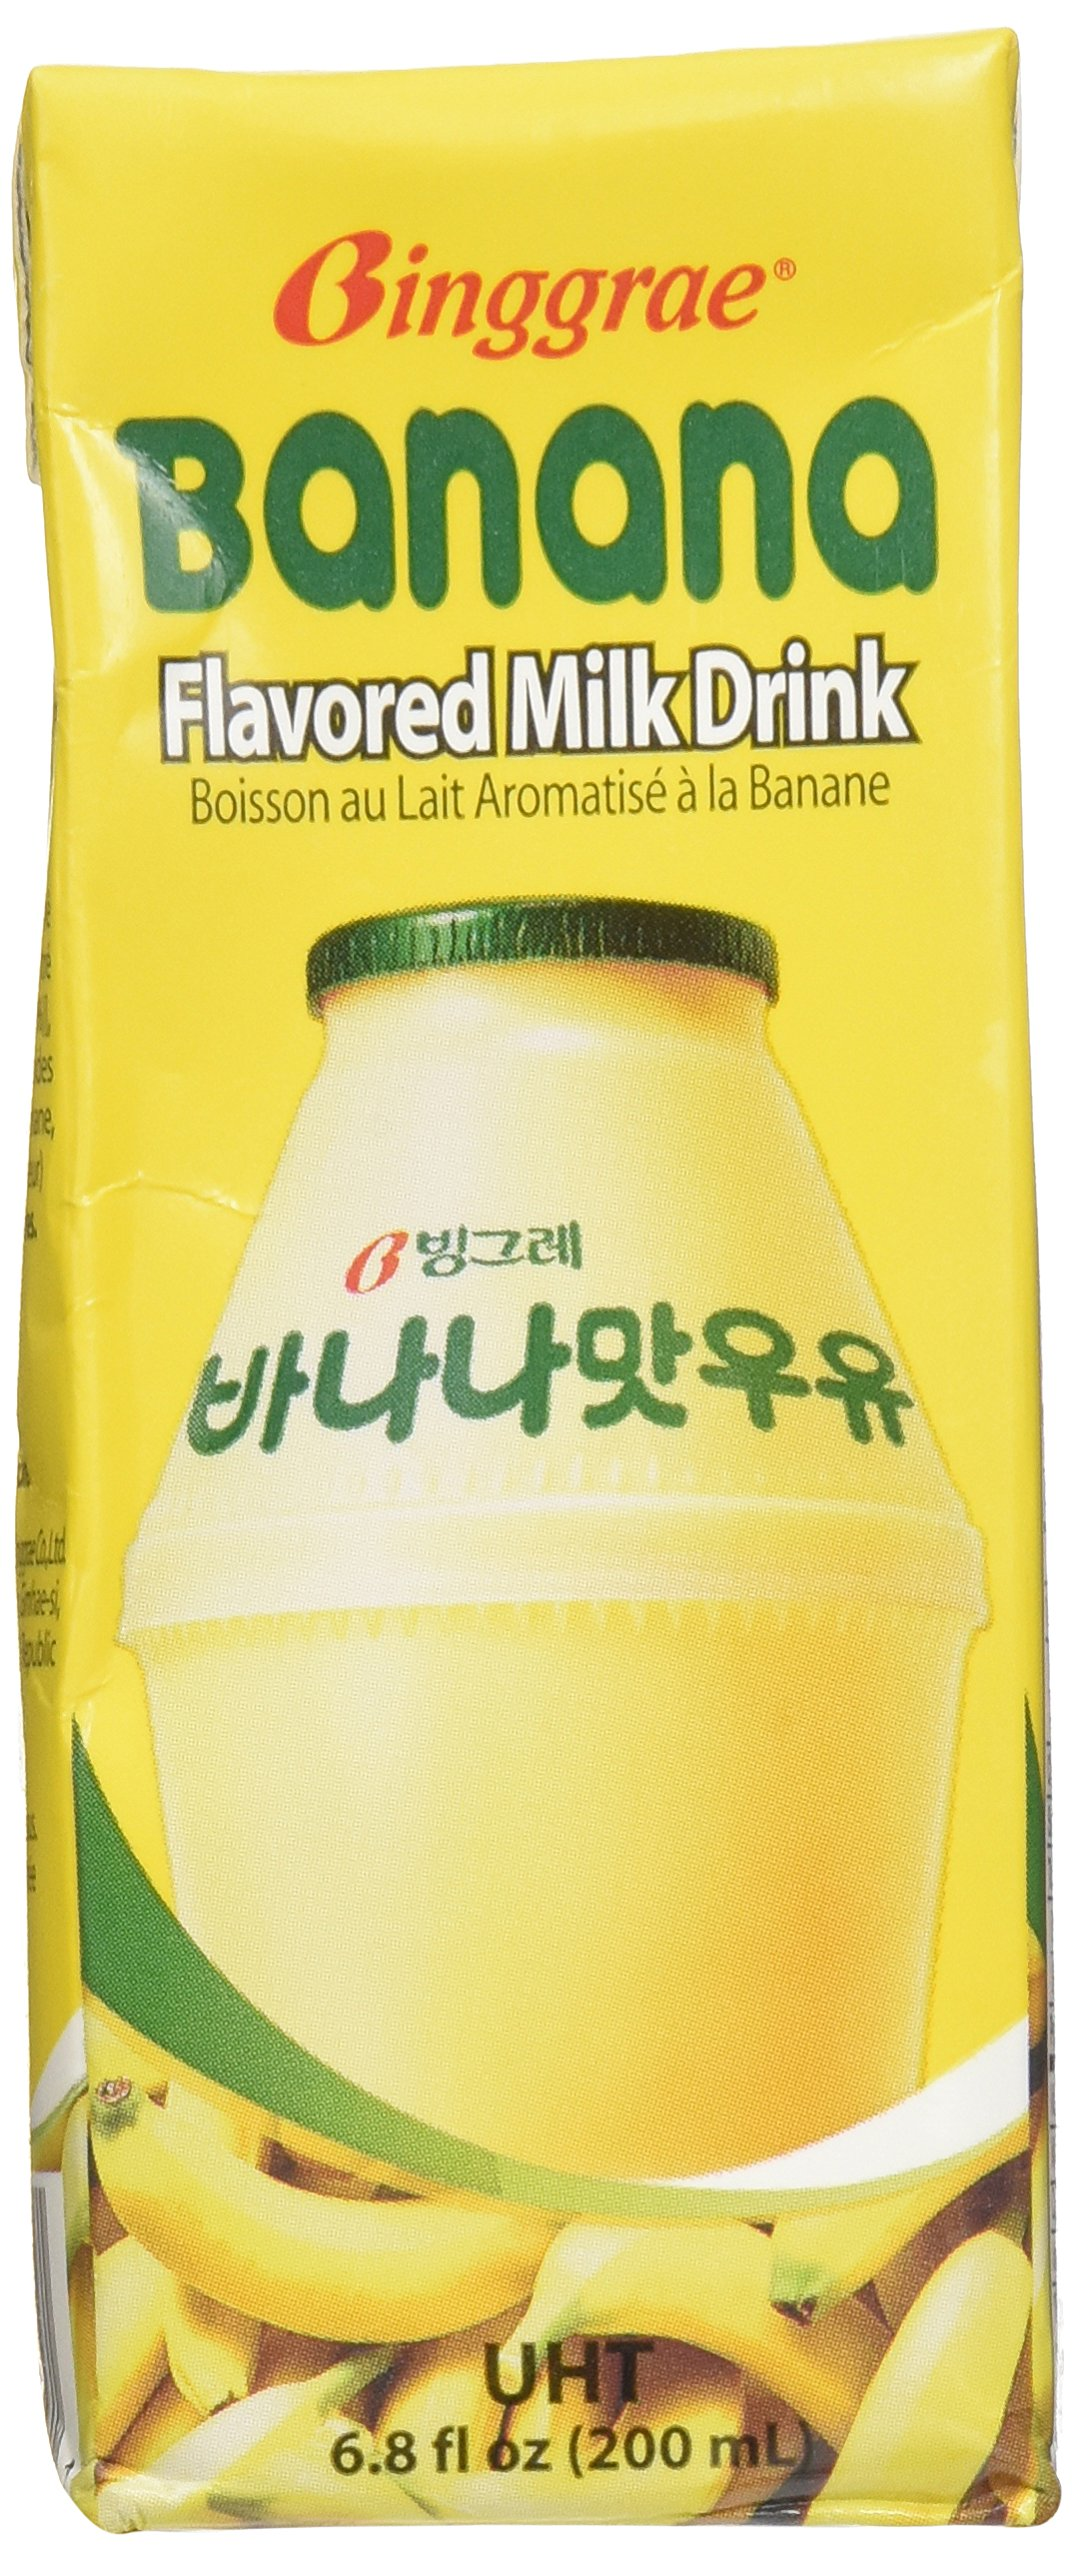 Binggrae Banana Flavor Milk 6 Pack by Binggrae